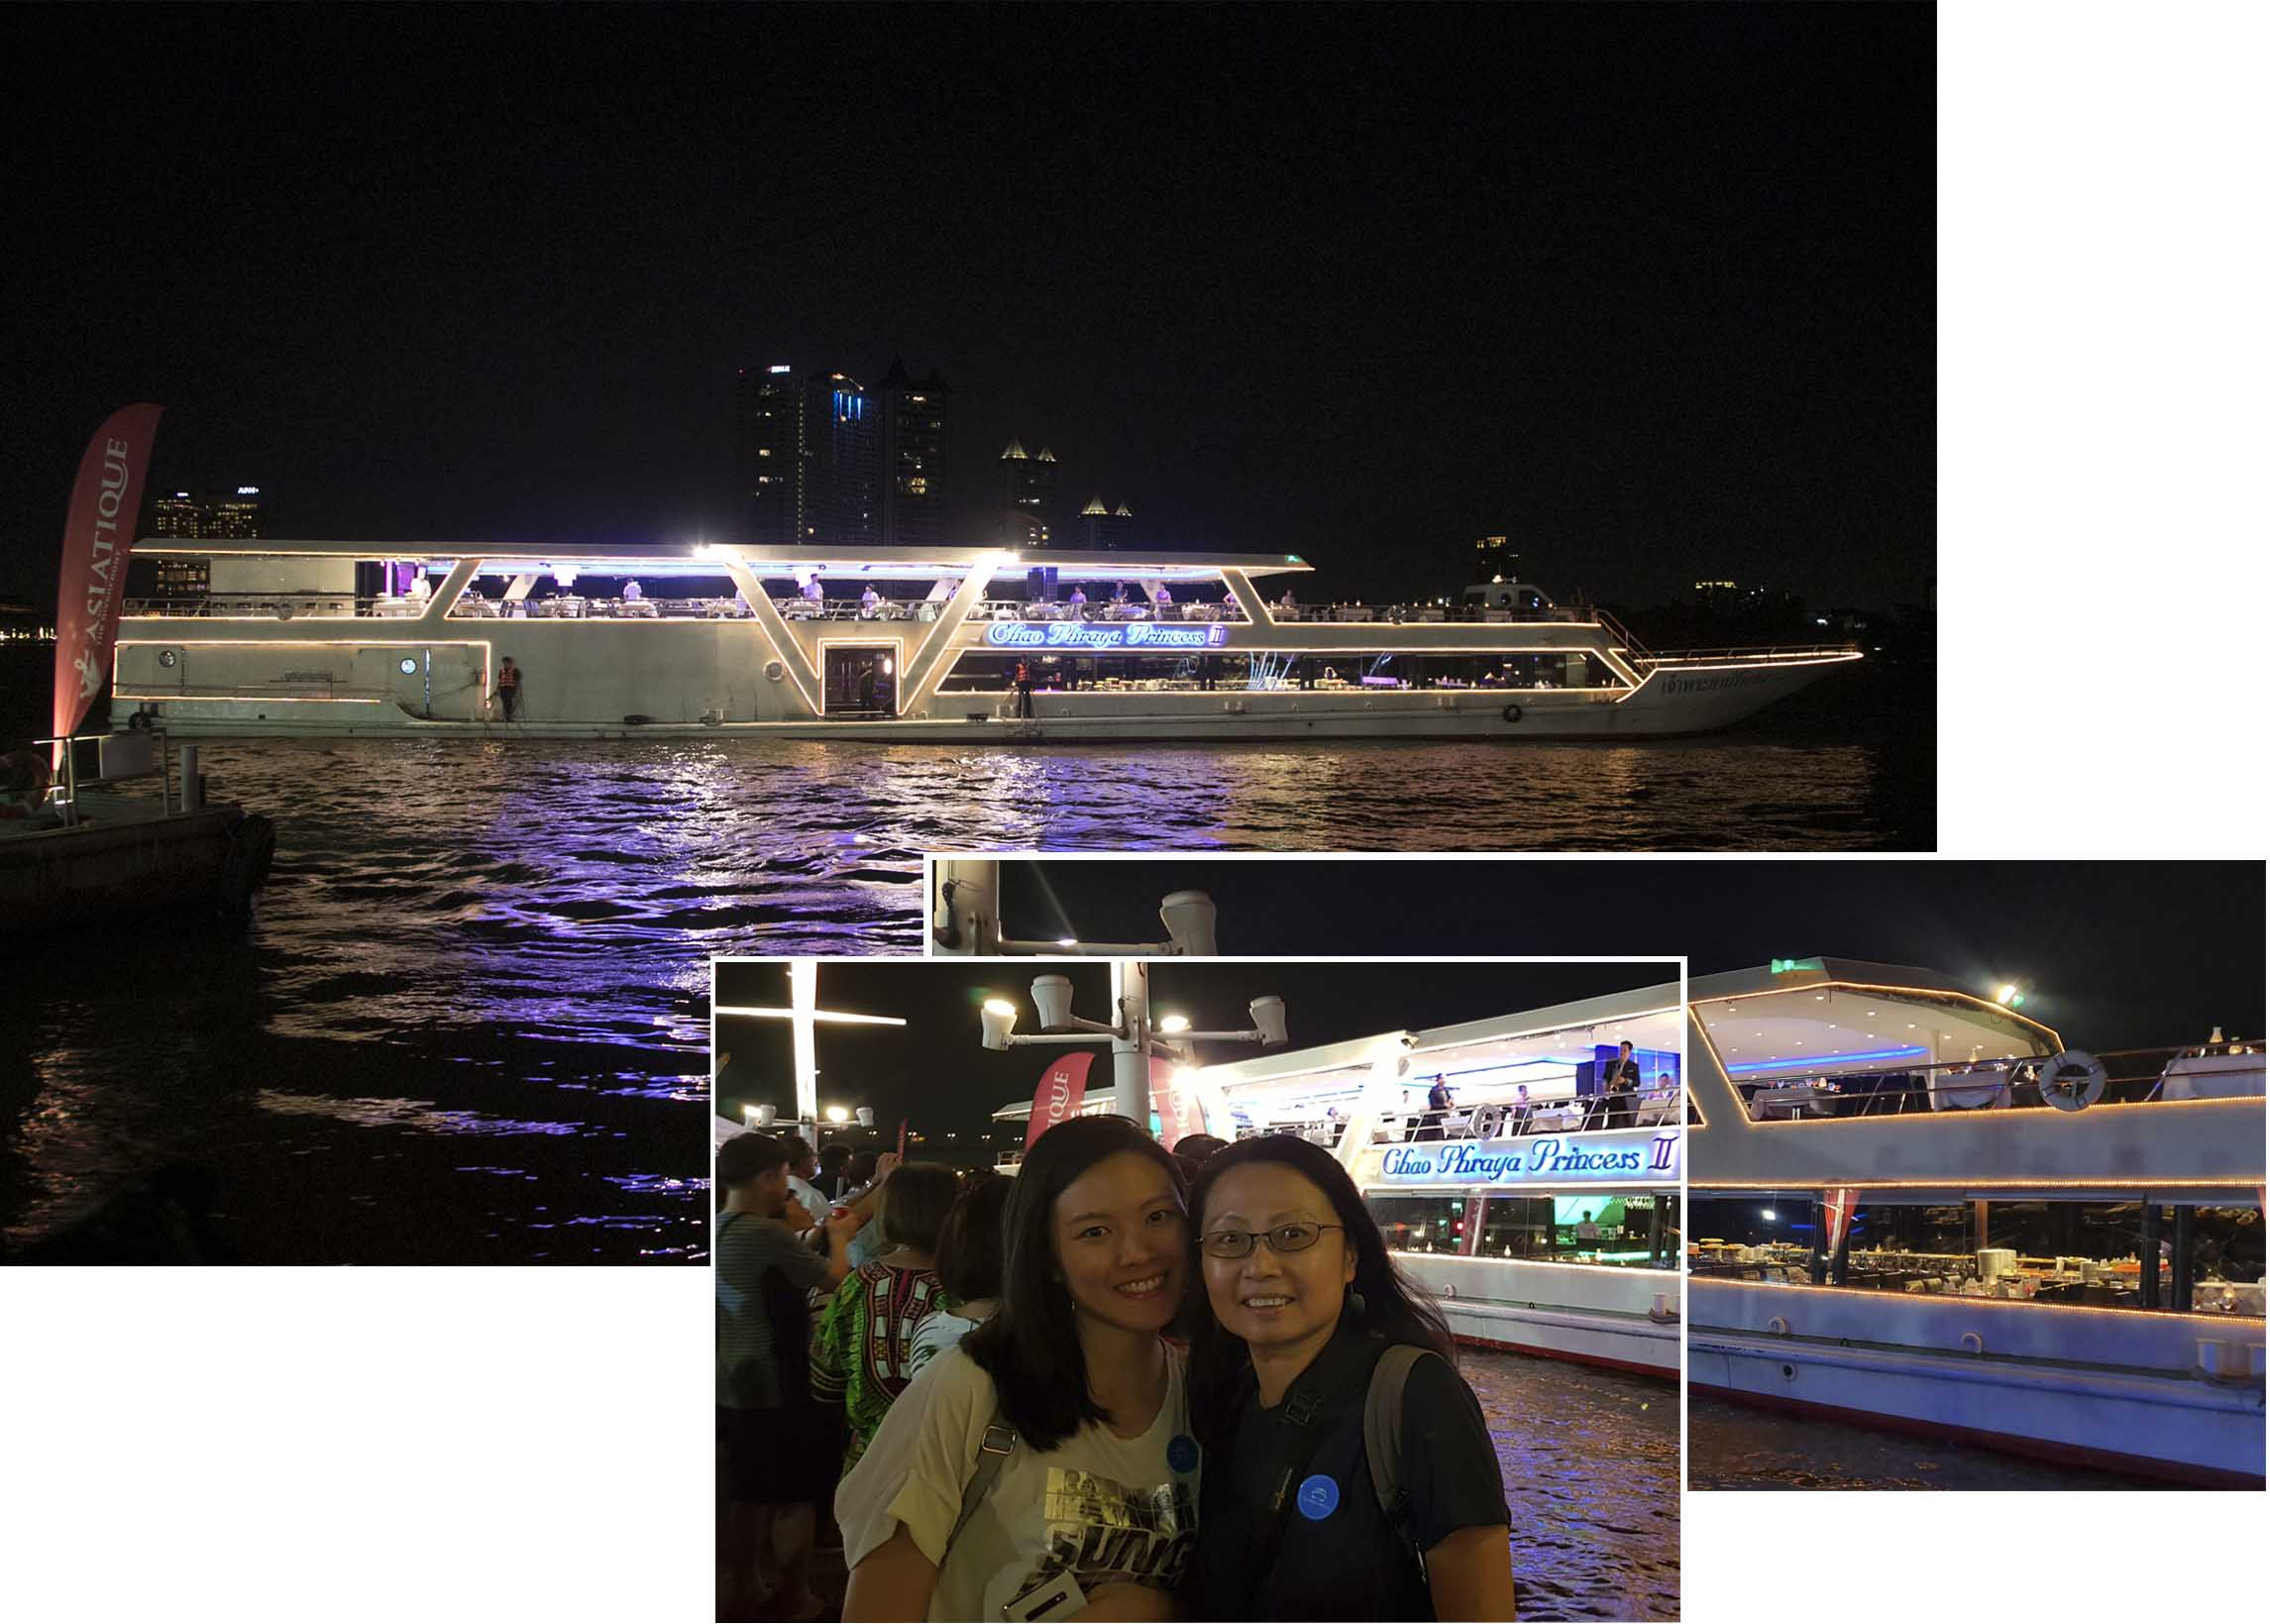 Getting read to board Chao Phraya Princess Cruise II